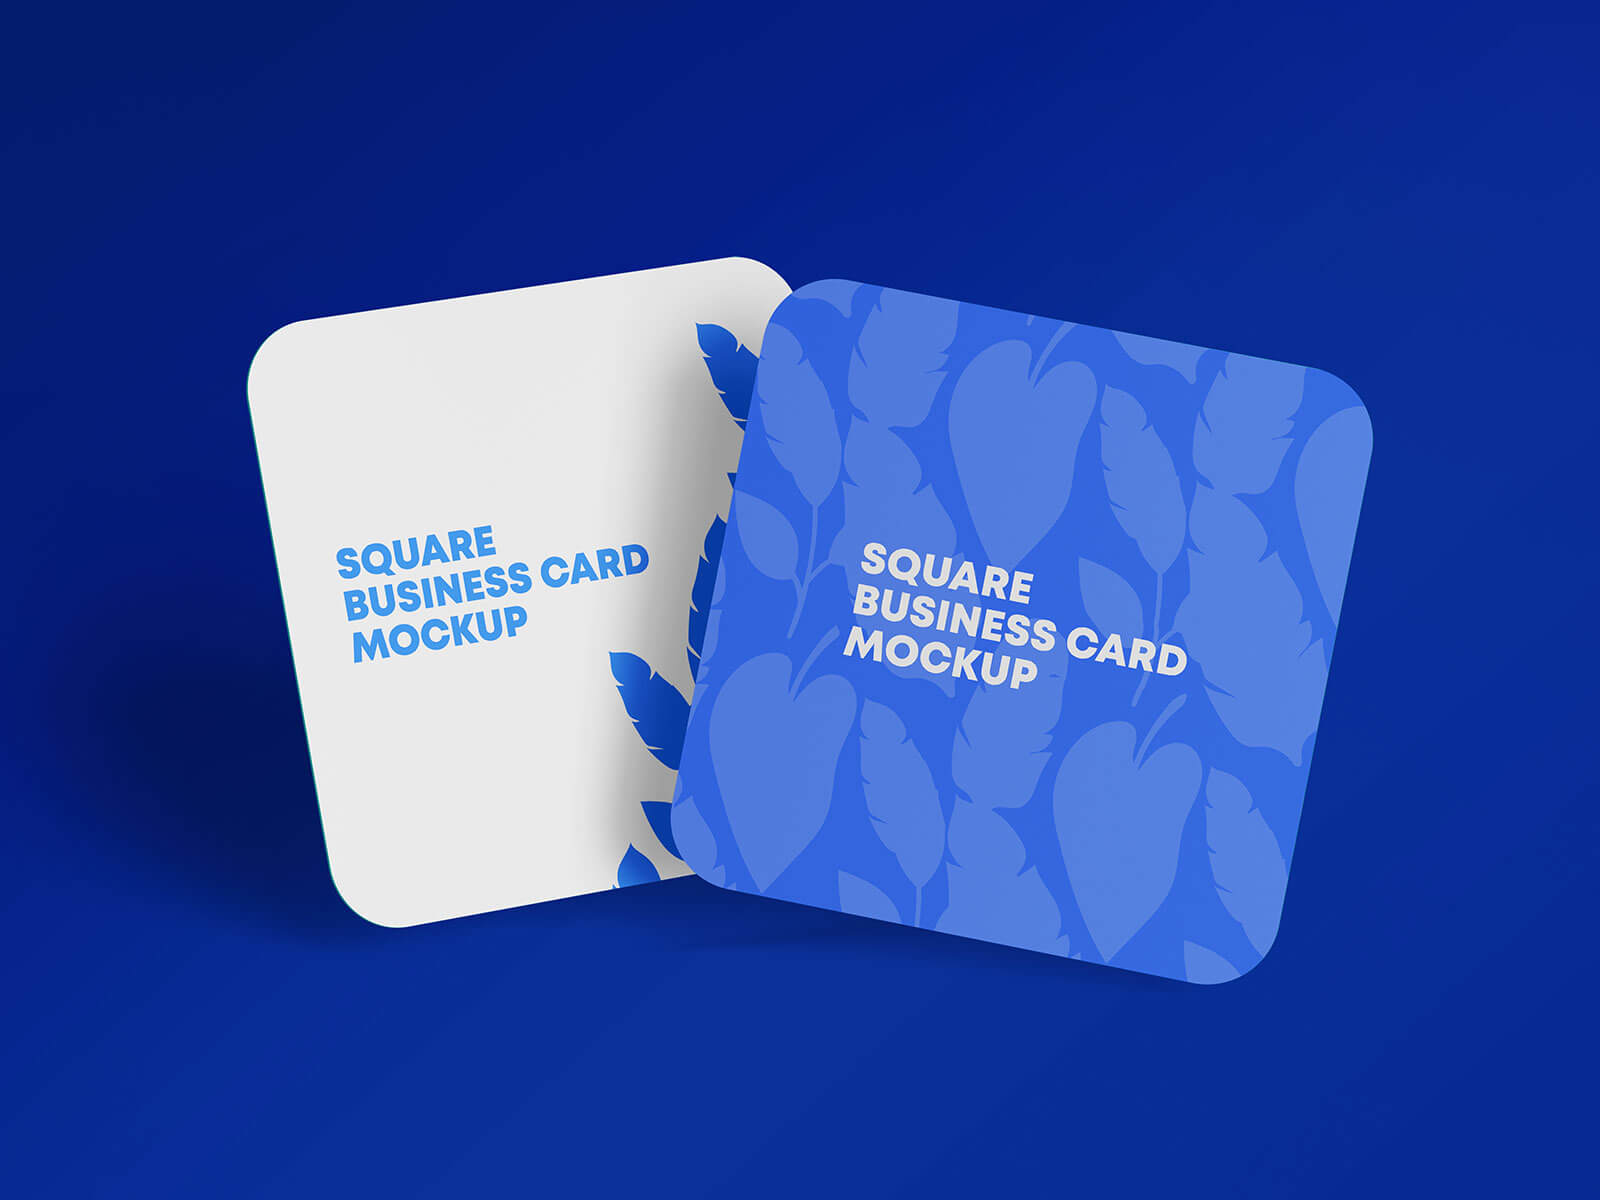 Free Rounded Corners Square Business Card Mockup PSD Set (1)